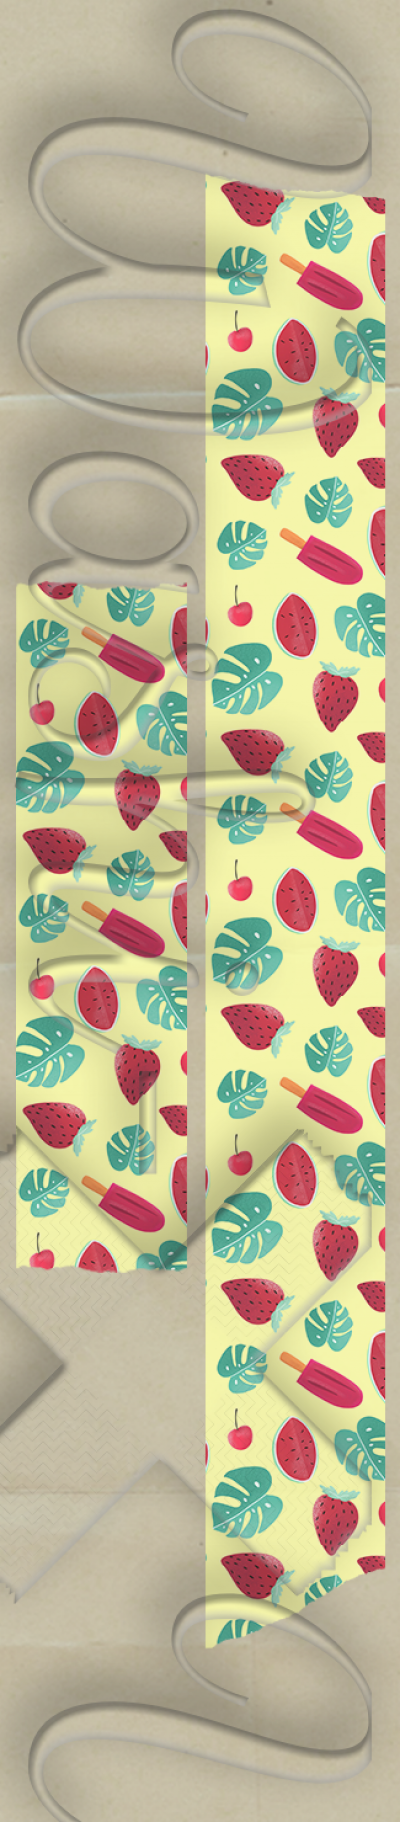 Summer patterned washi tape style 2